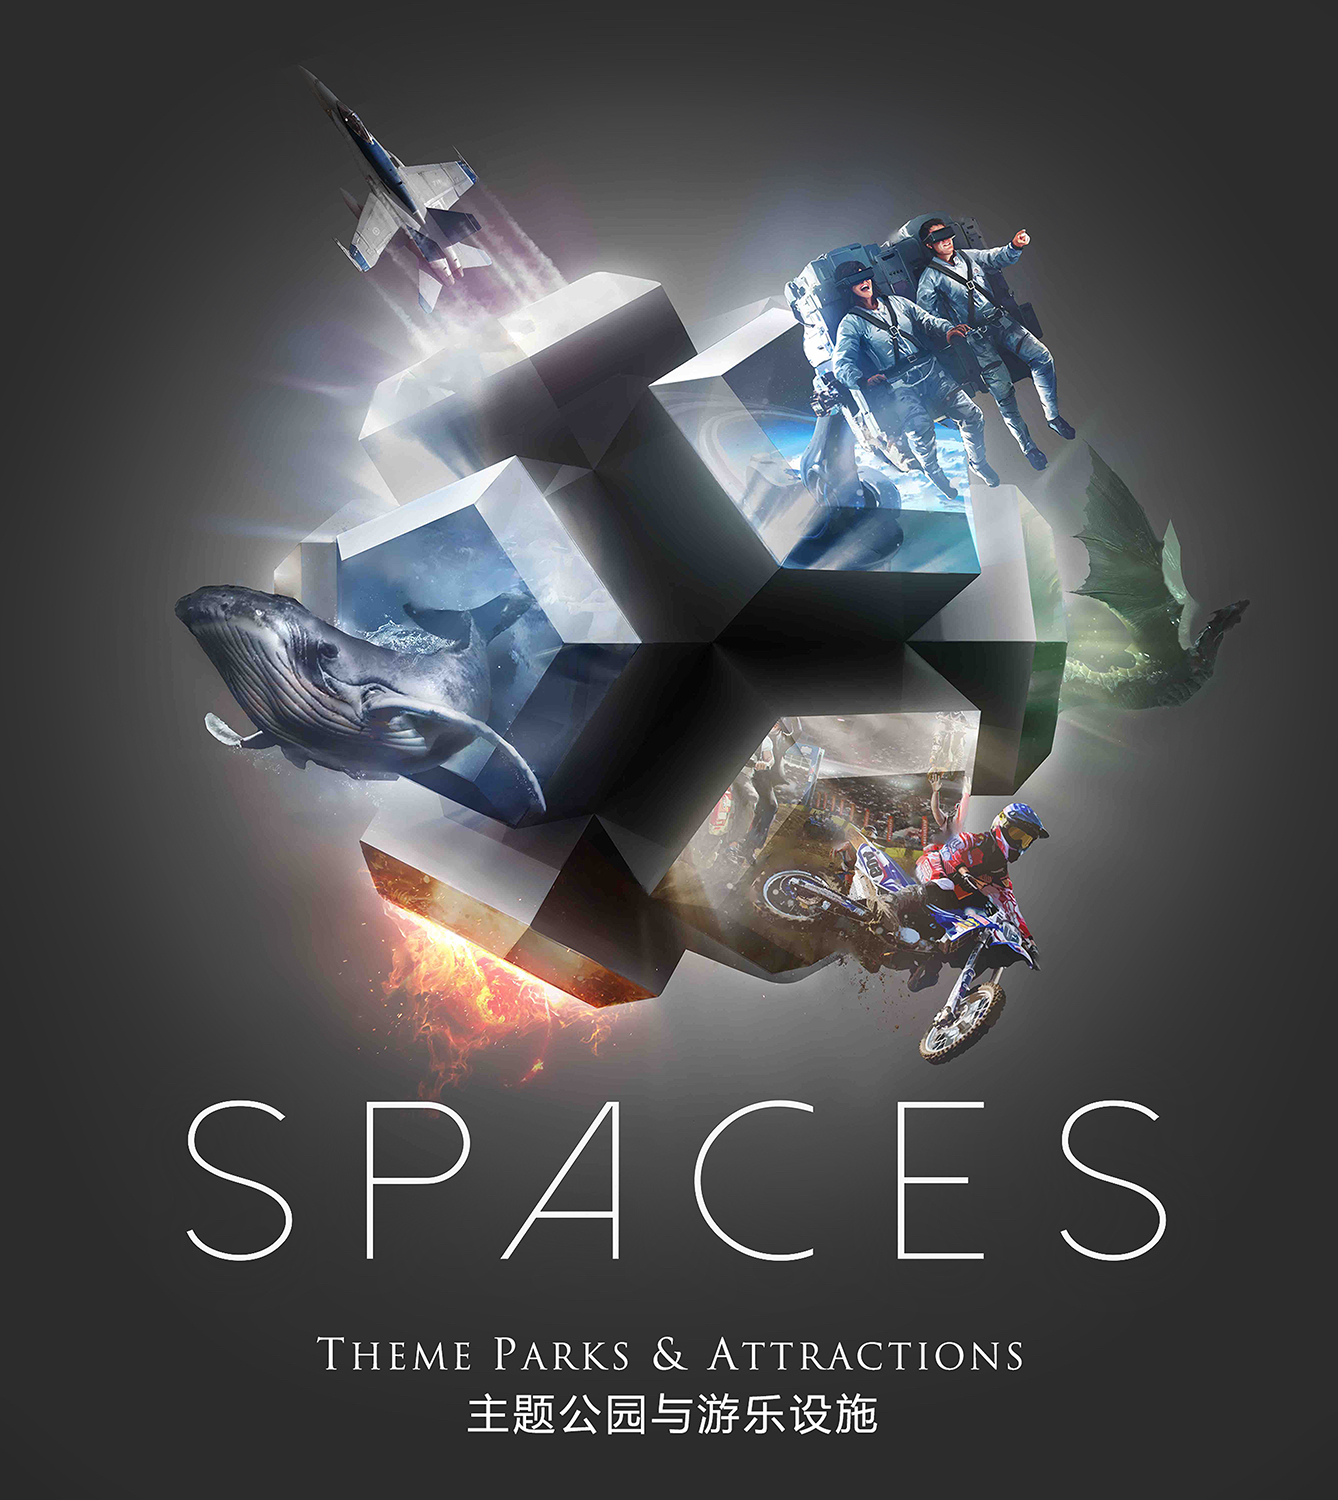 SPACES Inc., the virtual reality company launched in 2016 by VR pioneers from DreamWorks Animation, today announced that it has raised an additional $6.5 million in funding, led by top Chinese theme park company Songcheng Performance Development, along with investment by Comcast Ventures, which will allow it to build a bold new era of VR-enabled parks and attractions.  (Graphic: Business Wire)